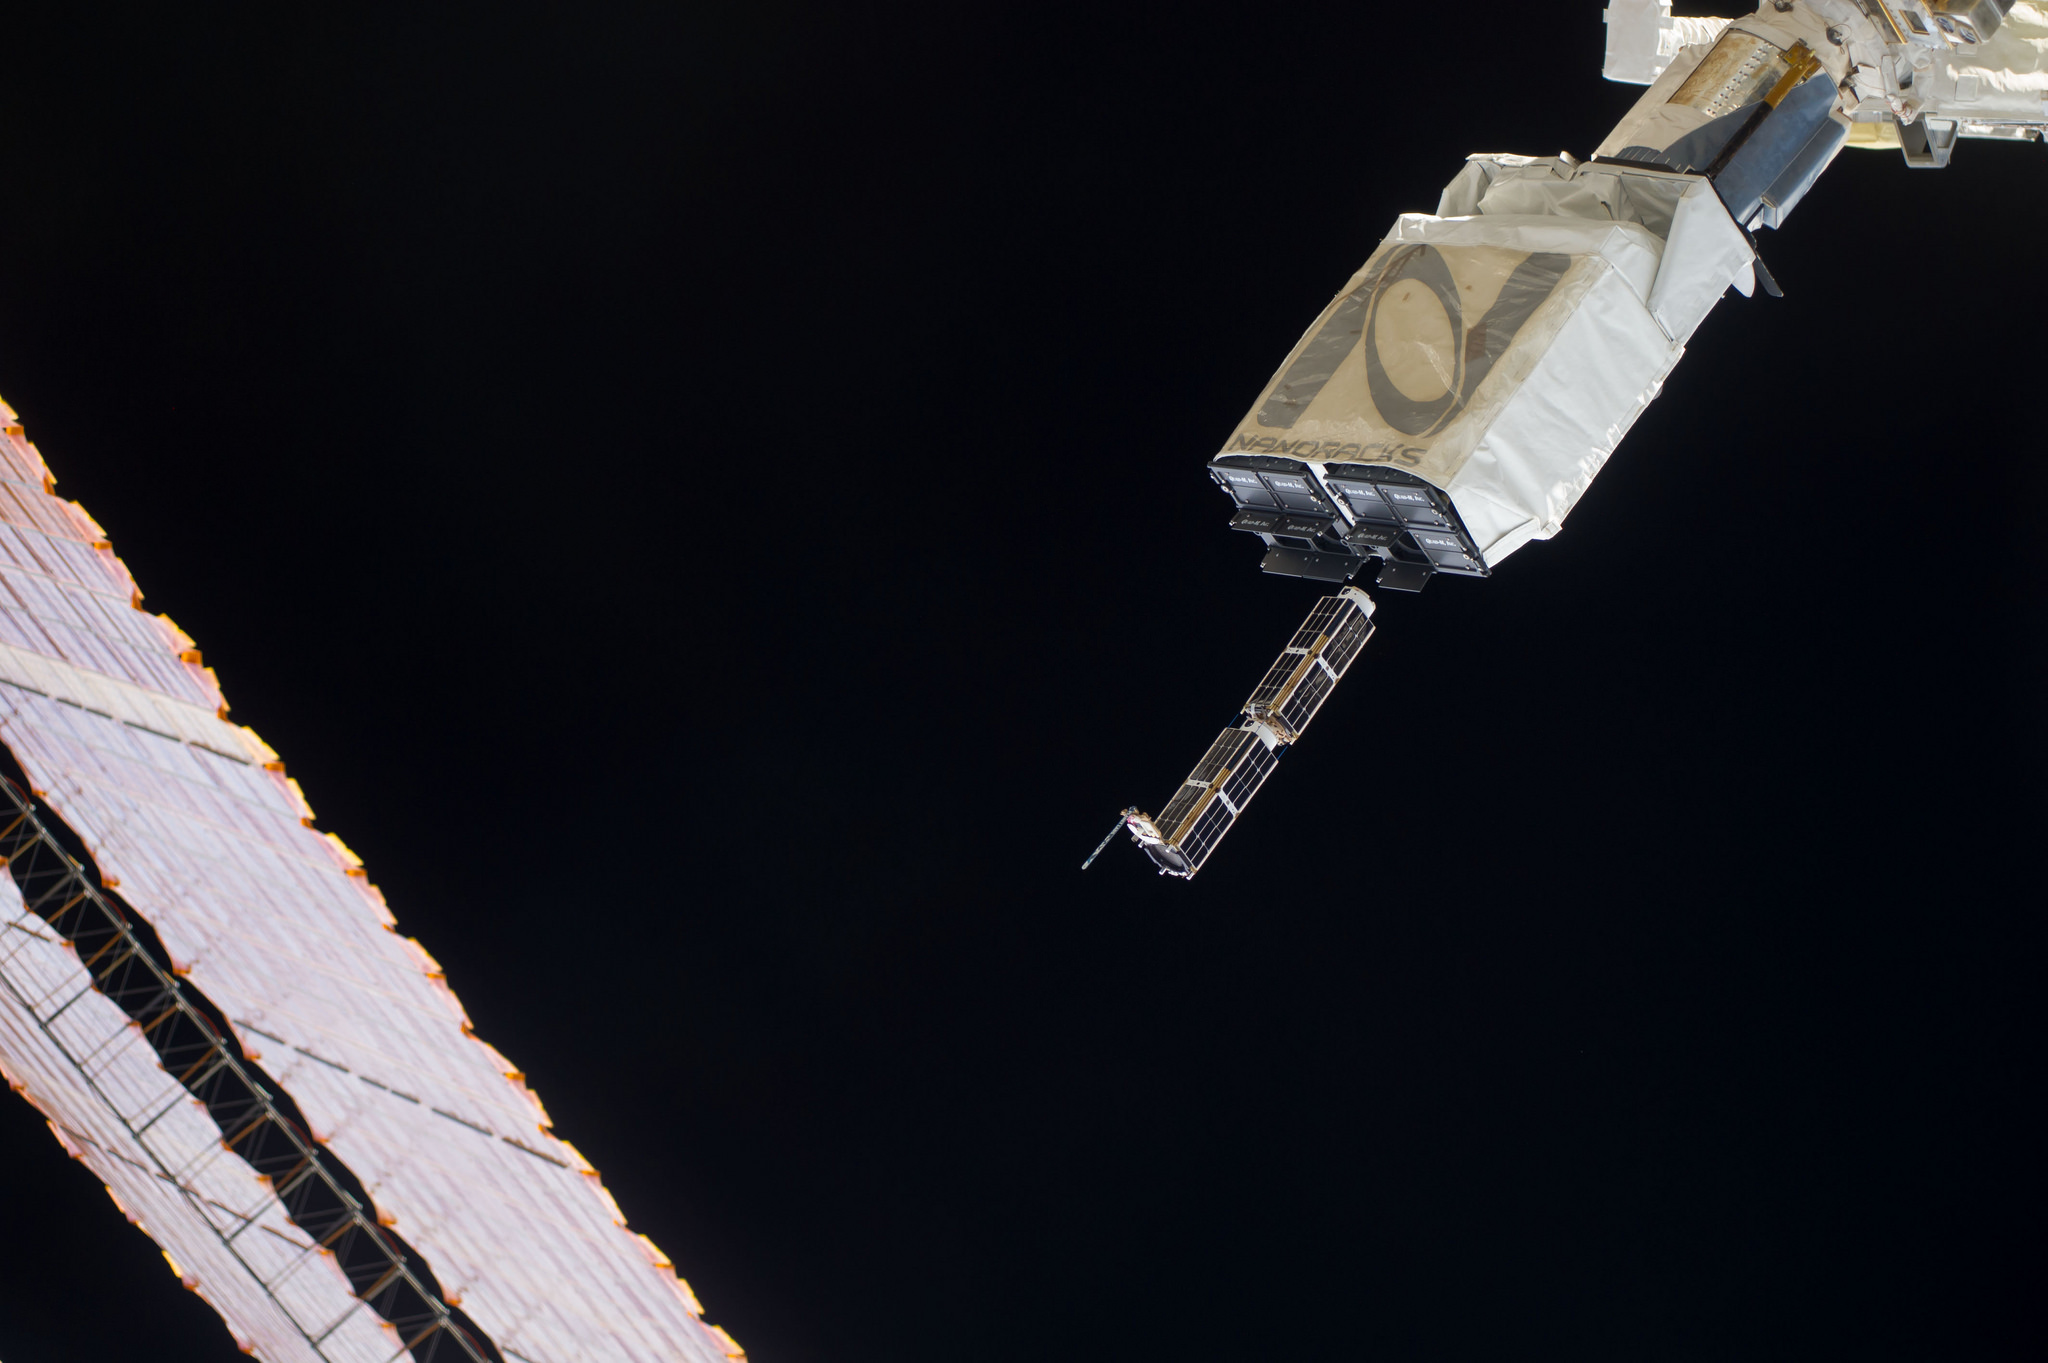 NASA: Tracking CubeSats is easy, but many stay in orbit ...